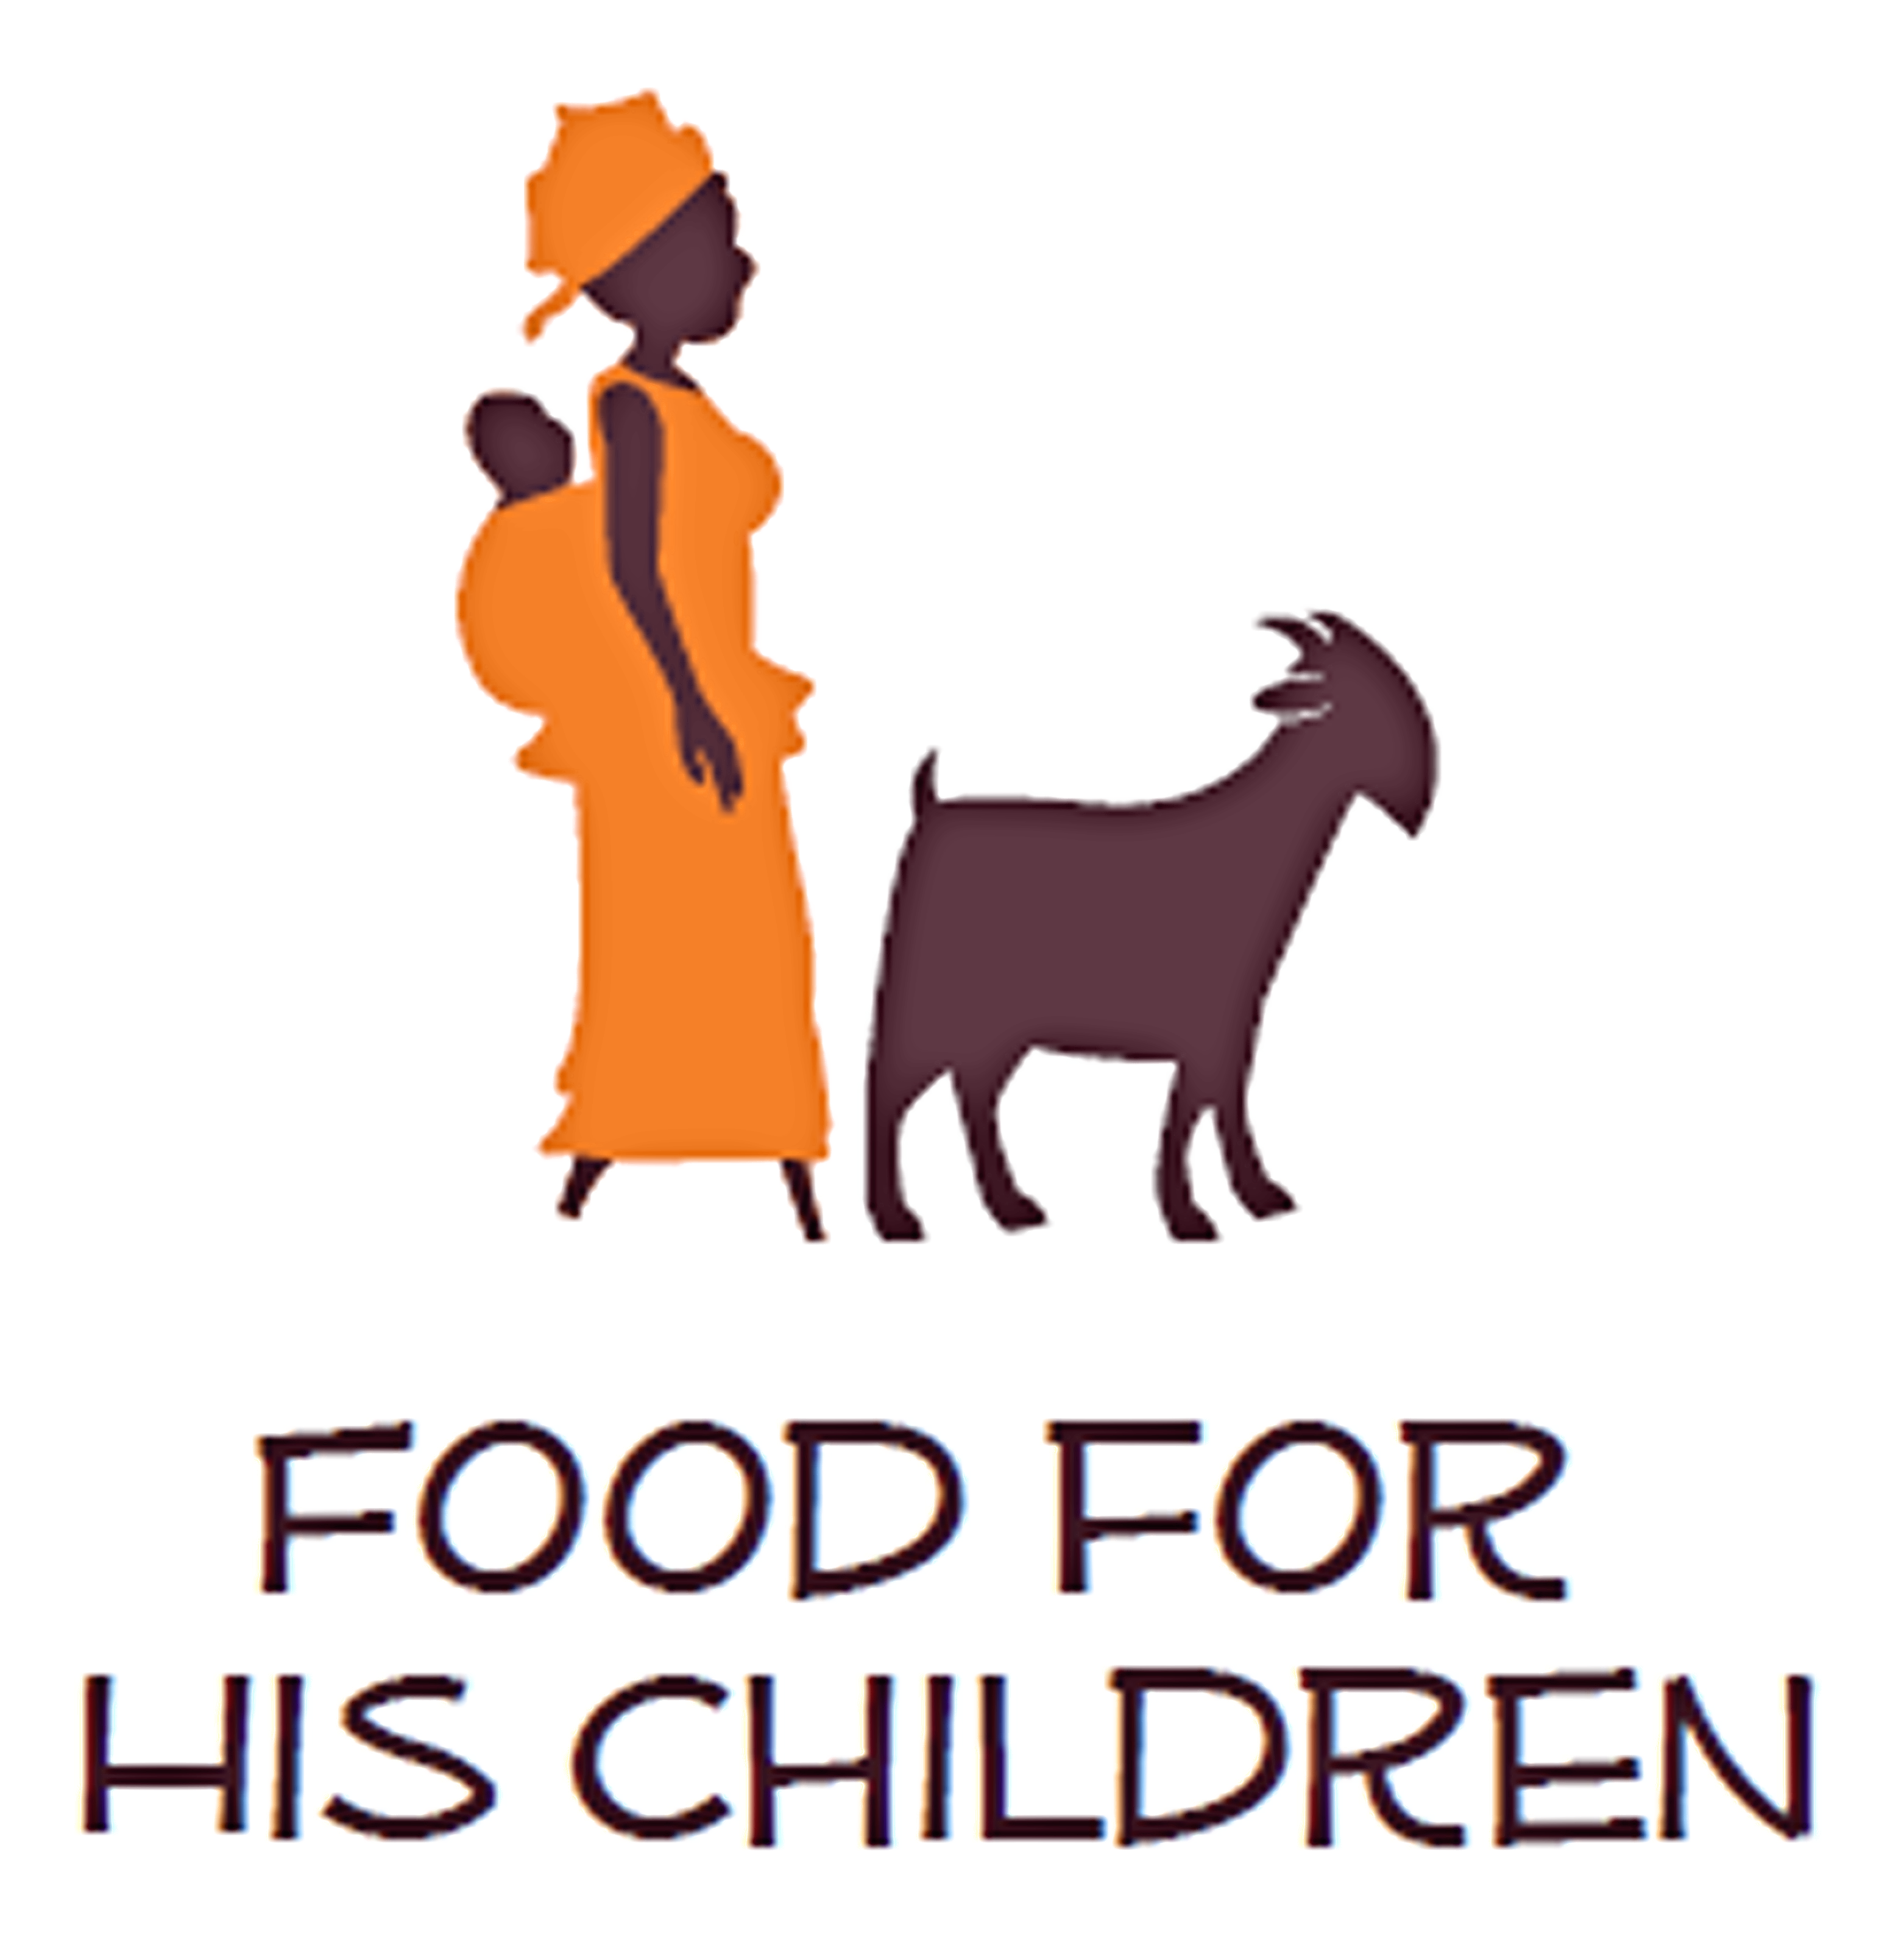 Food for His Children